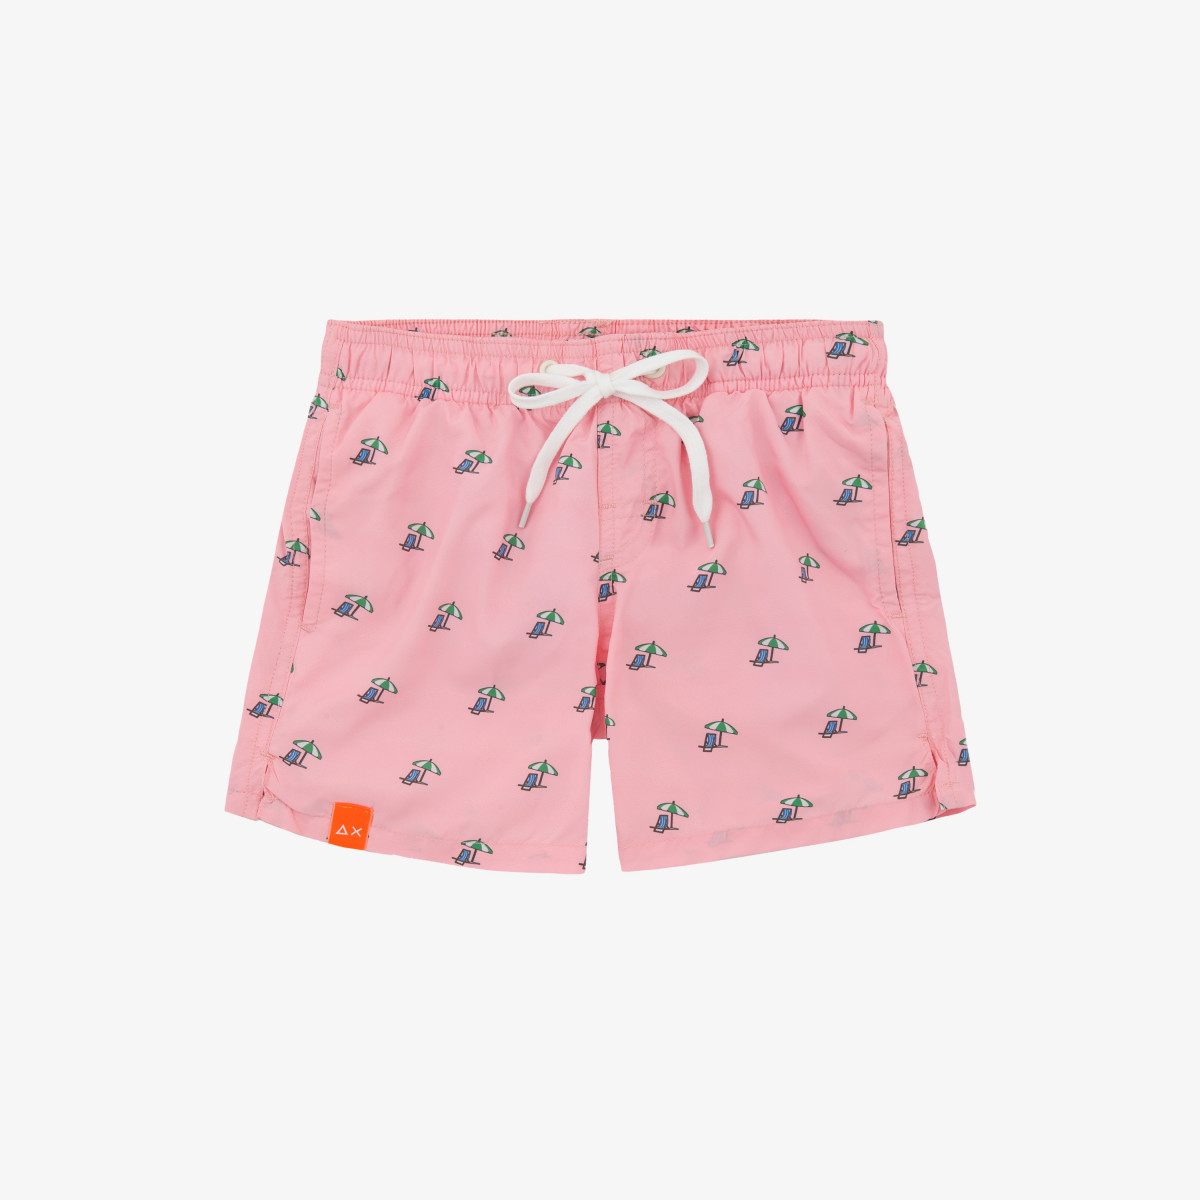 BOY'S SWIM PANT MICROPRINT ROSA